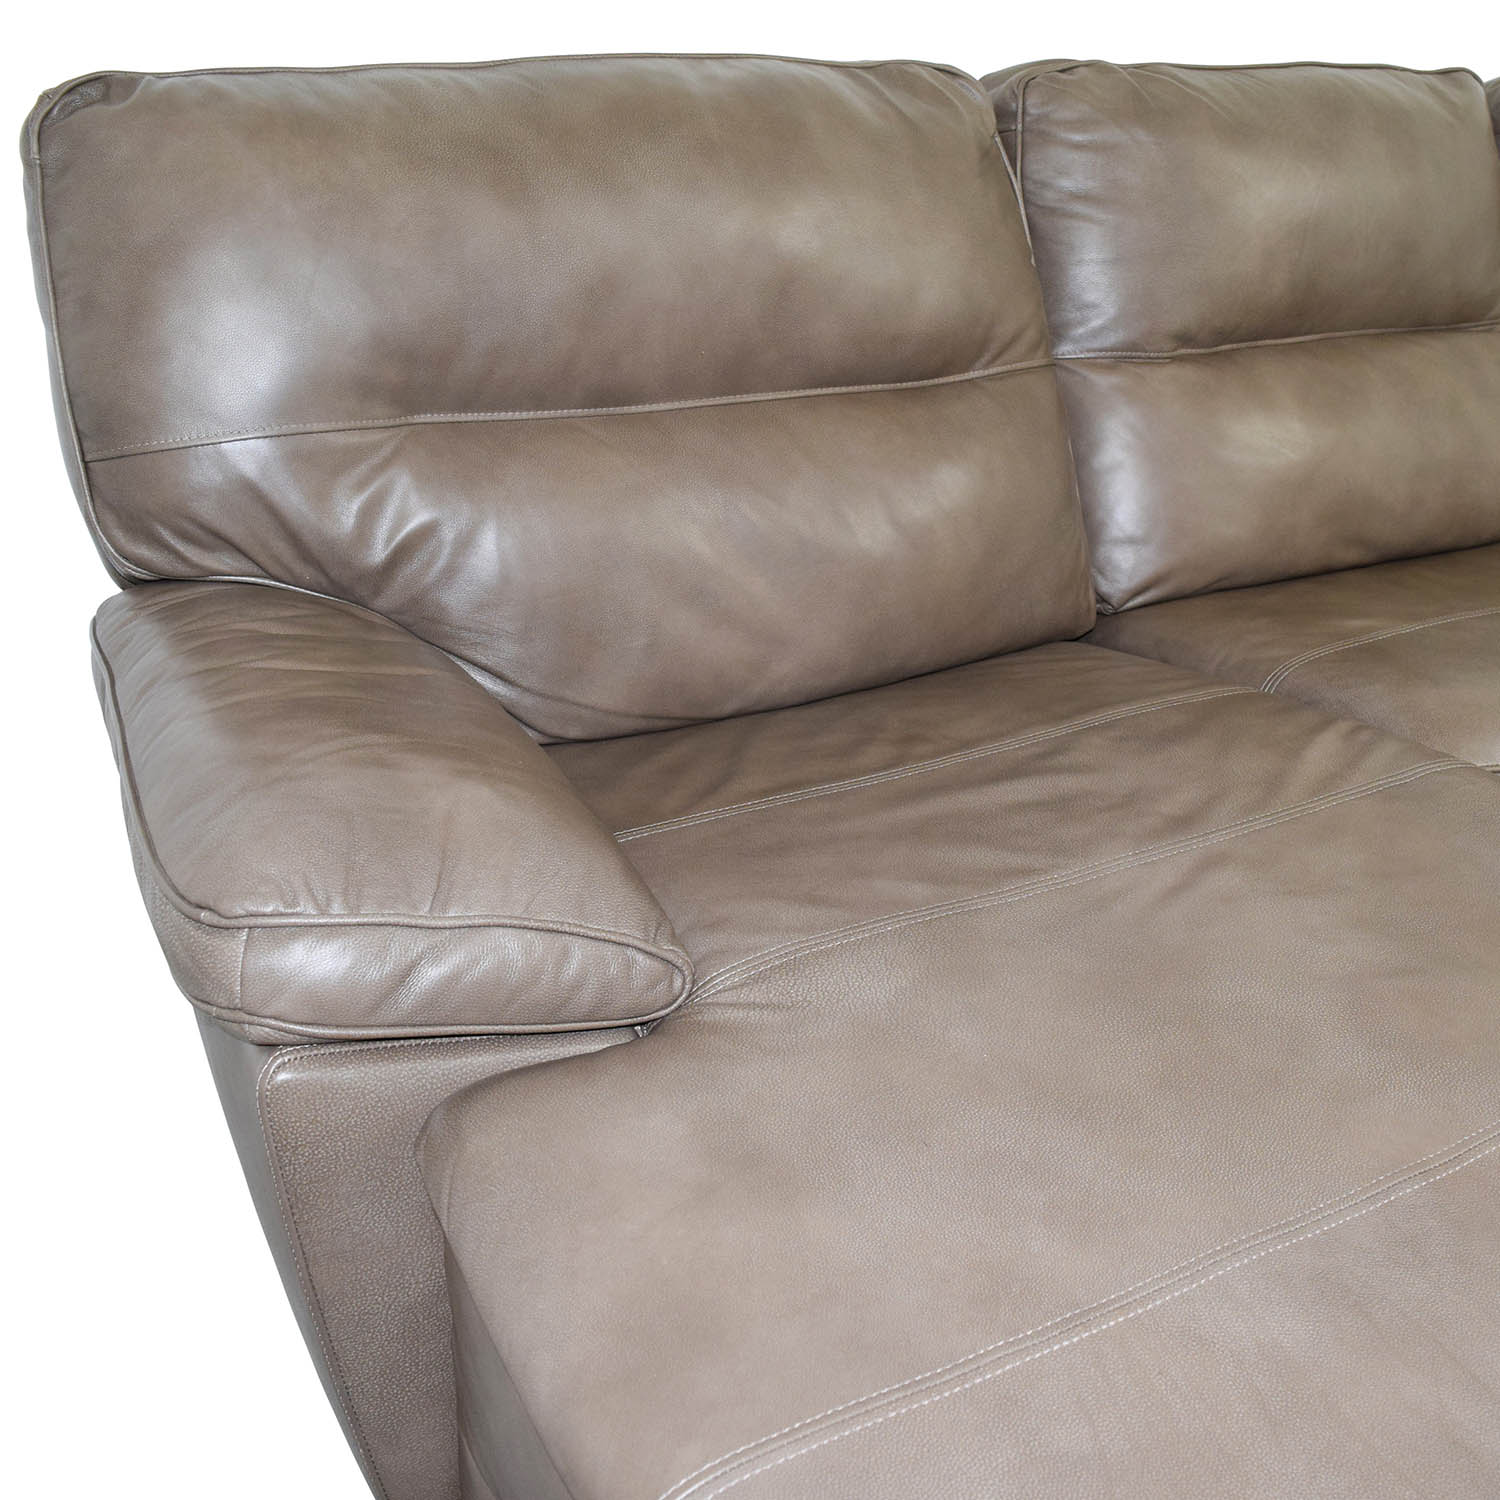 Macys Macys Gunmetal Grey Leather Chaise Lounge Recliner Sofas